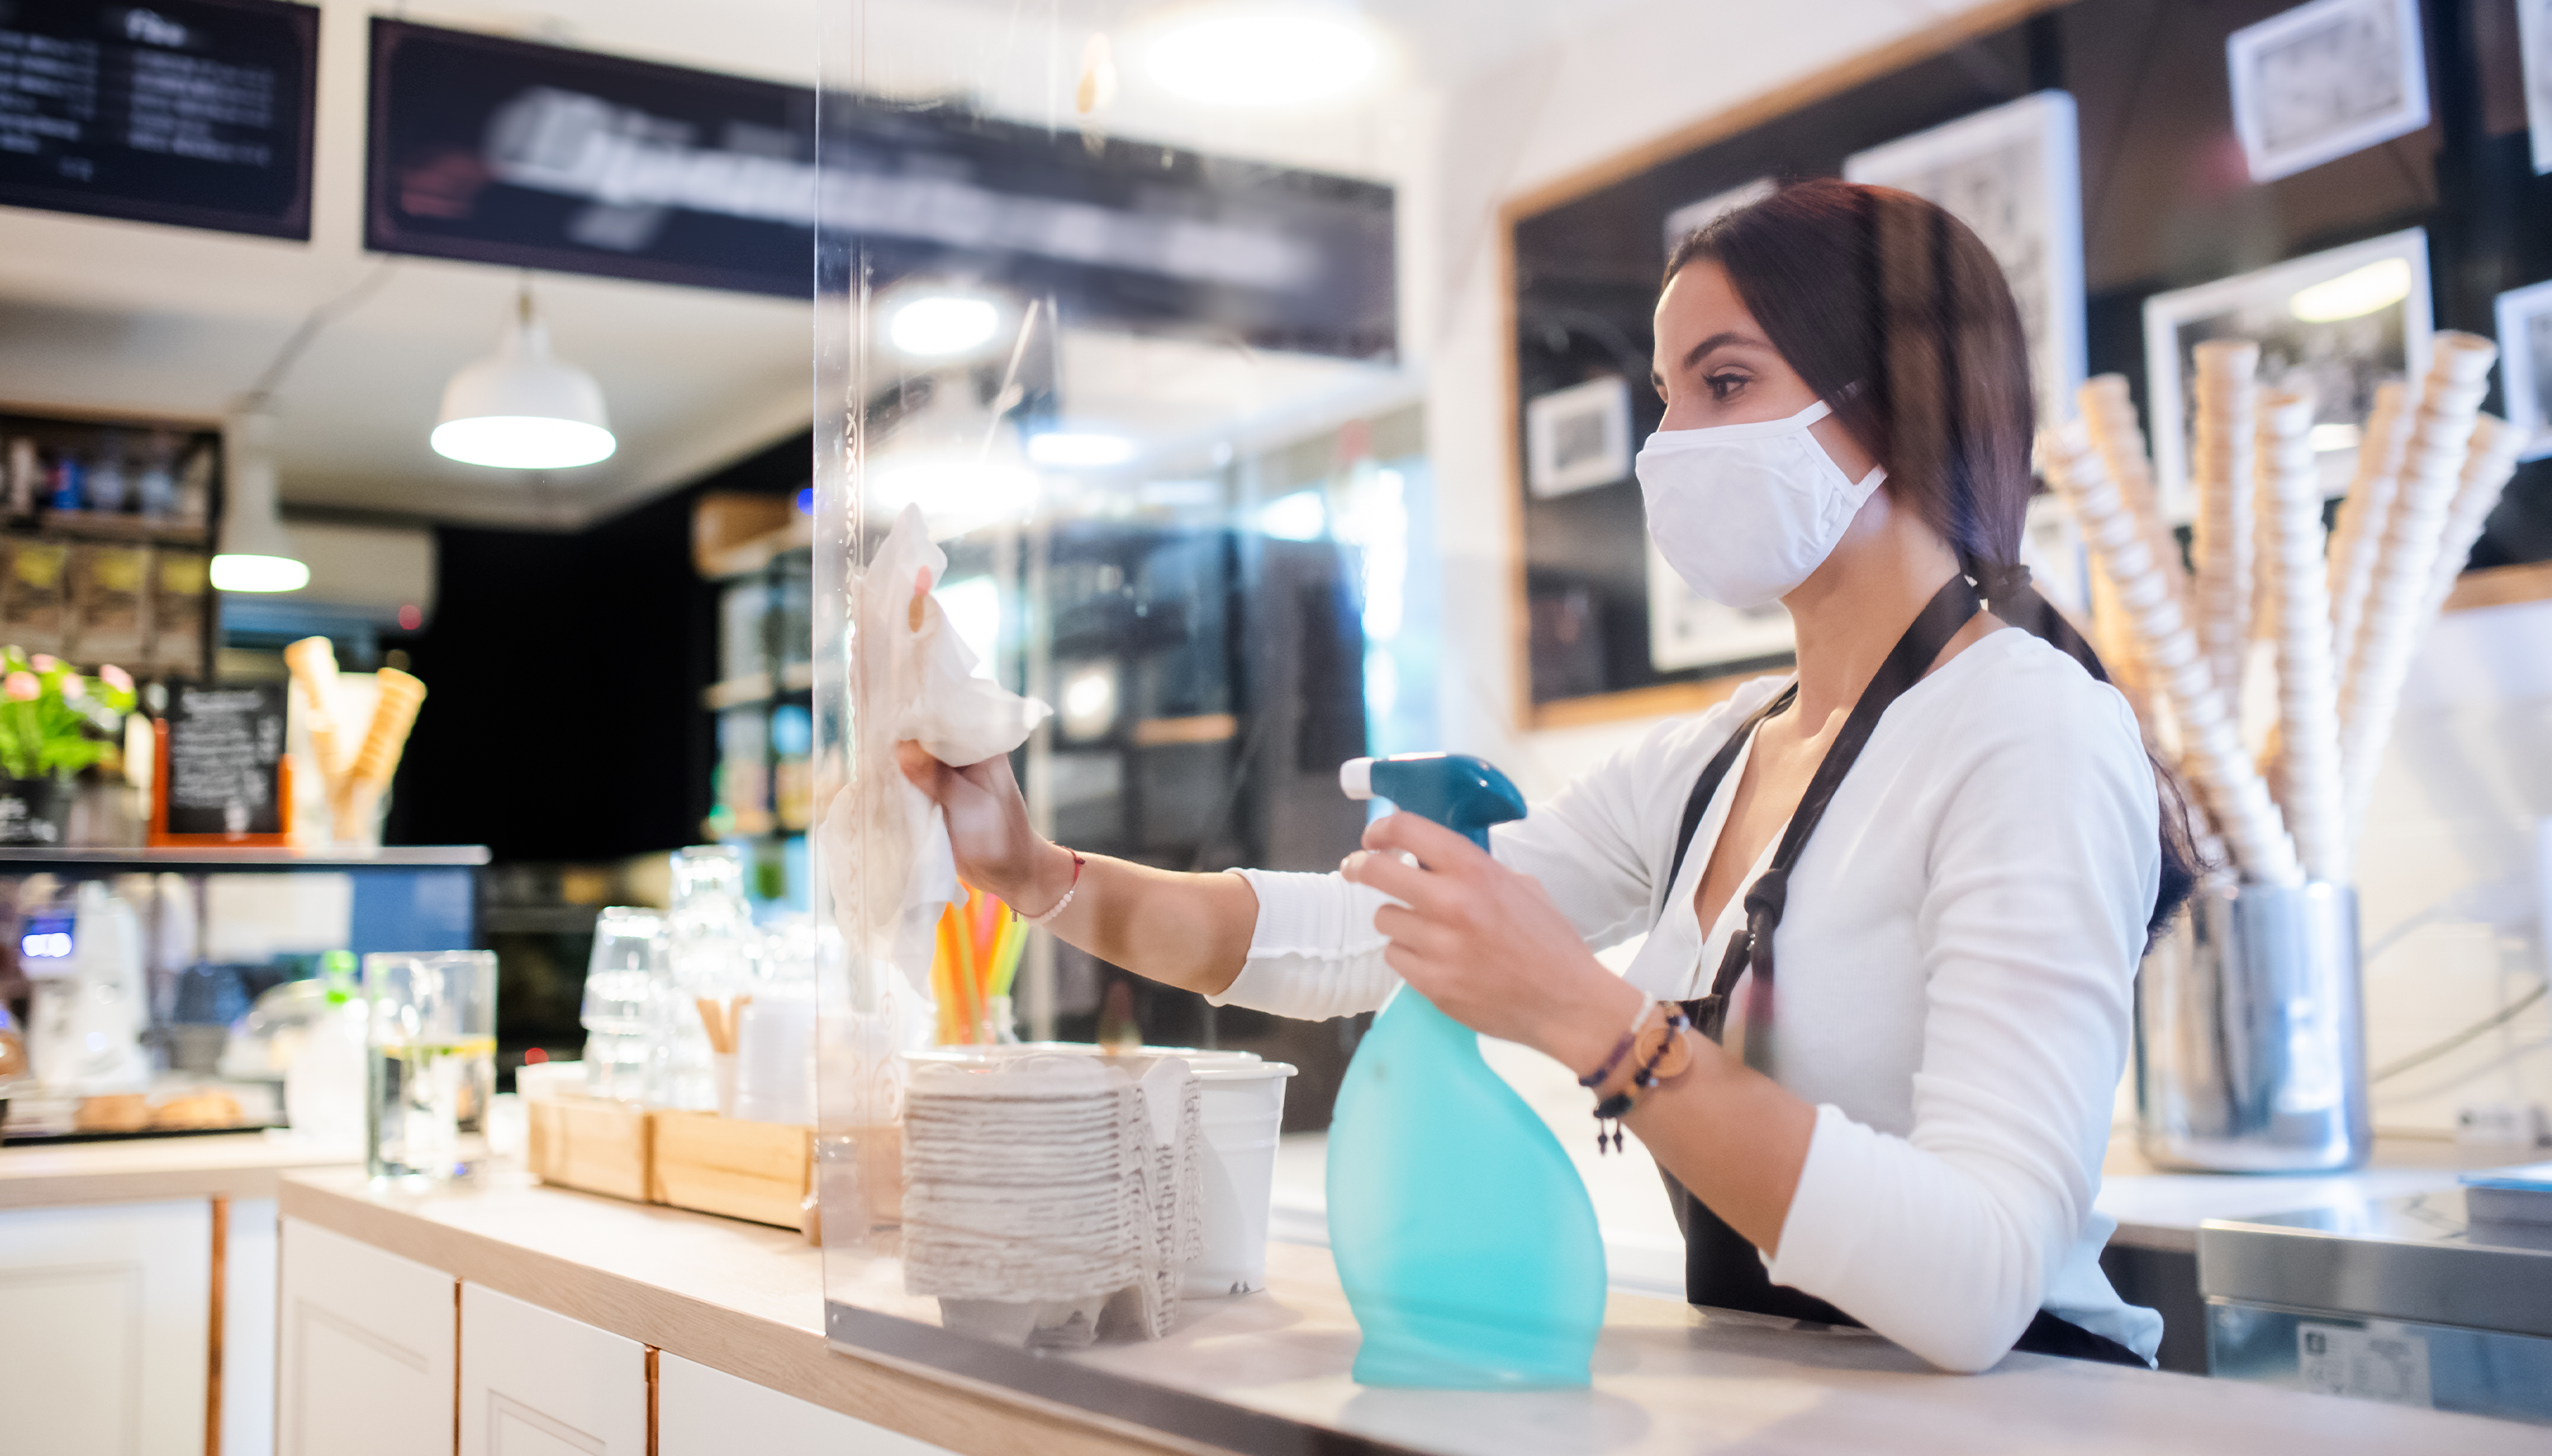 Woman wearing face mask working in cafe.